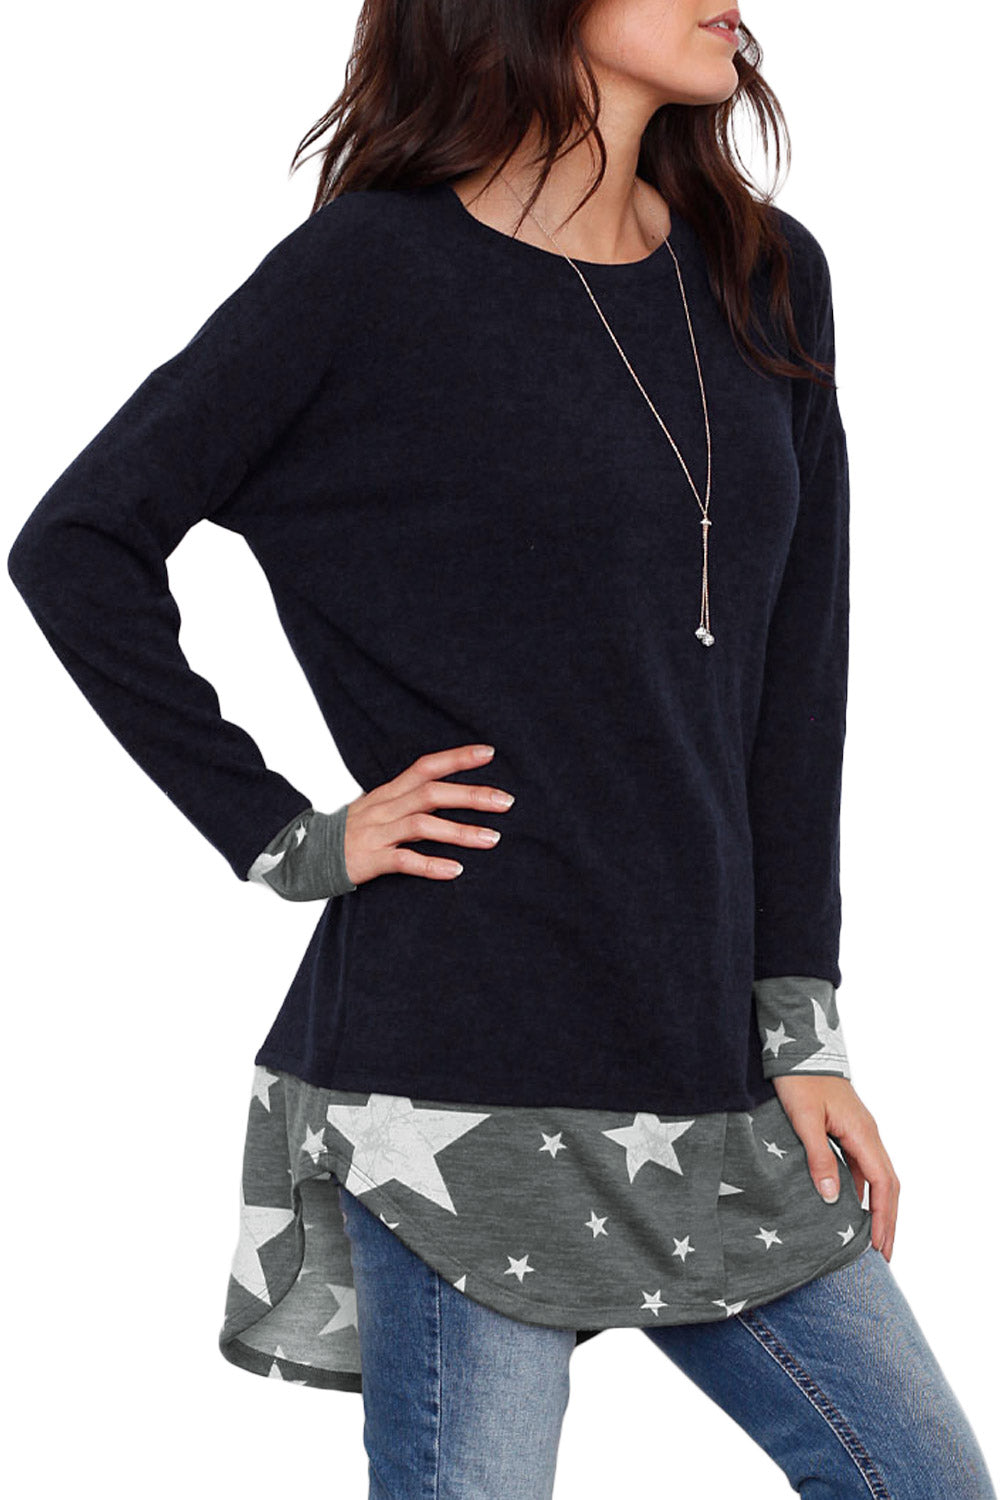 Star Splice Navy Long Sleeve Tunic Top